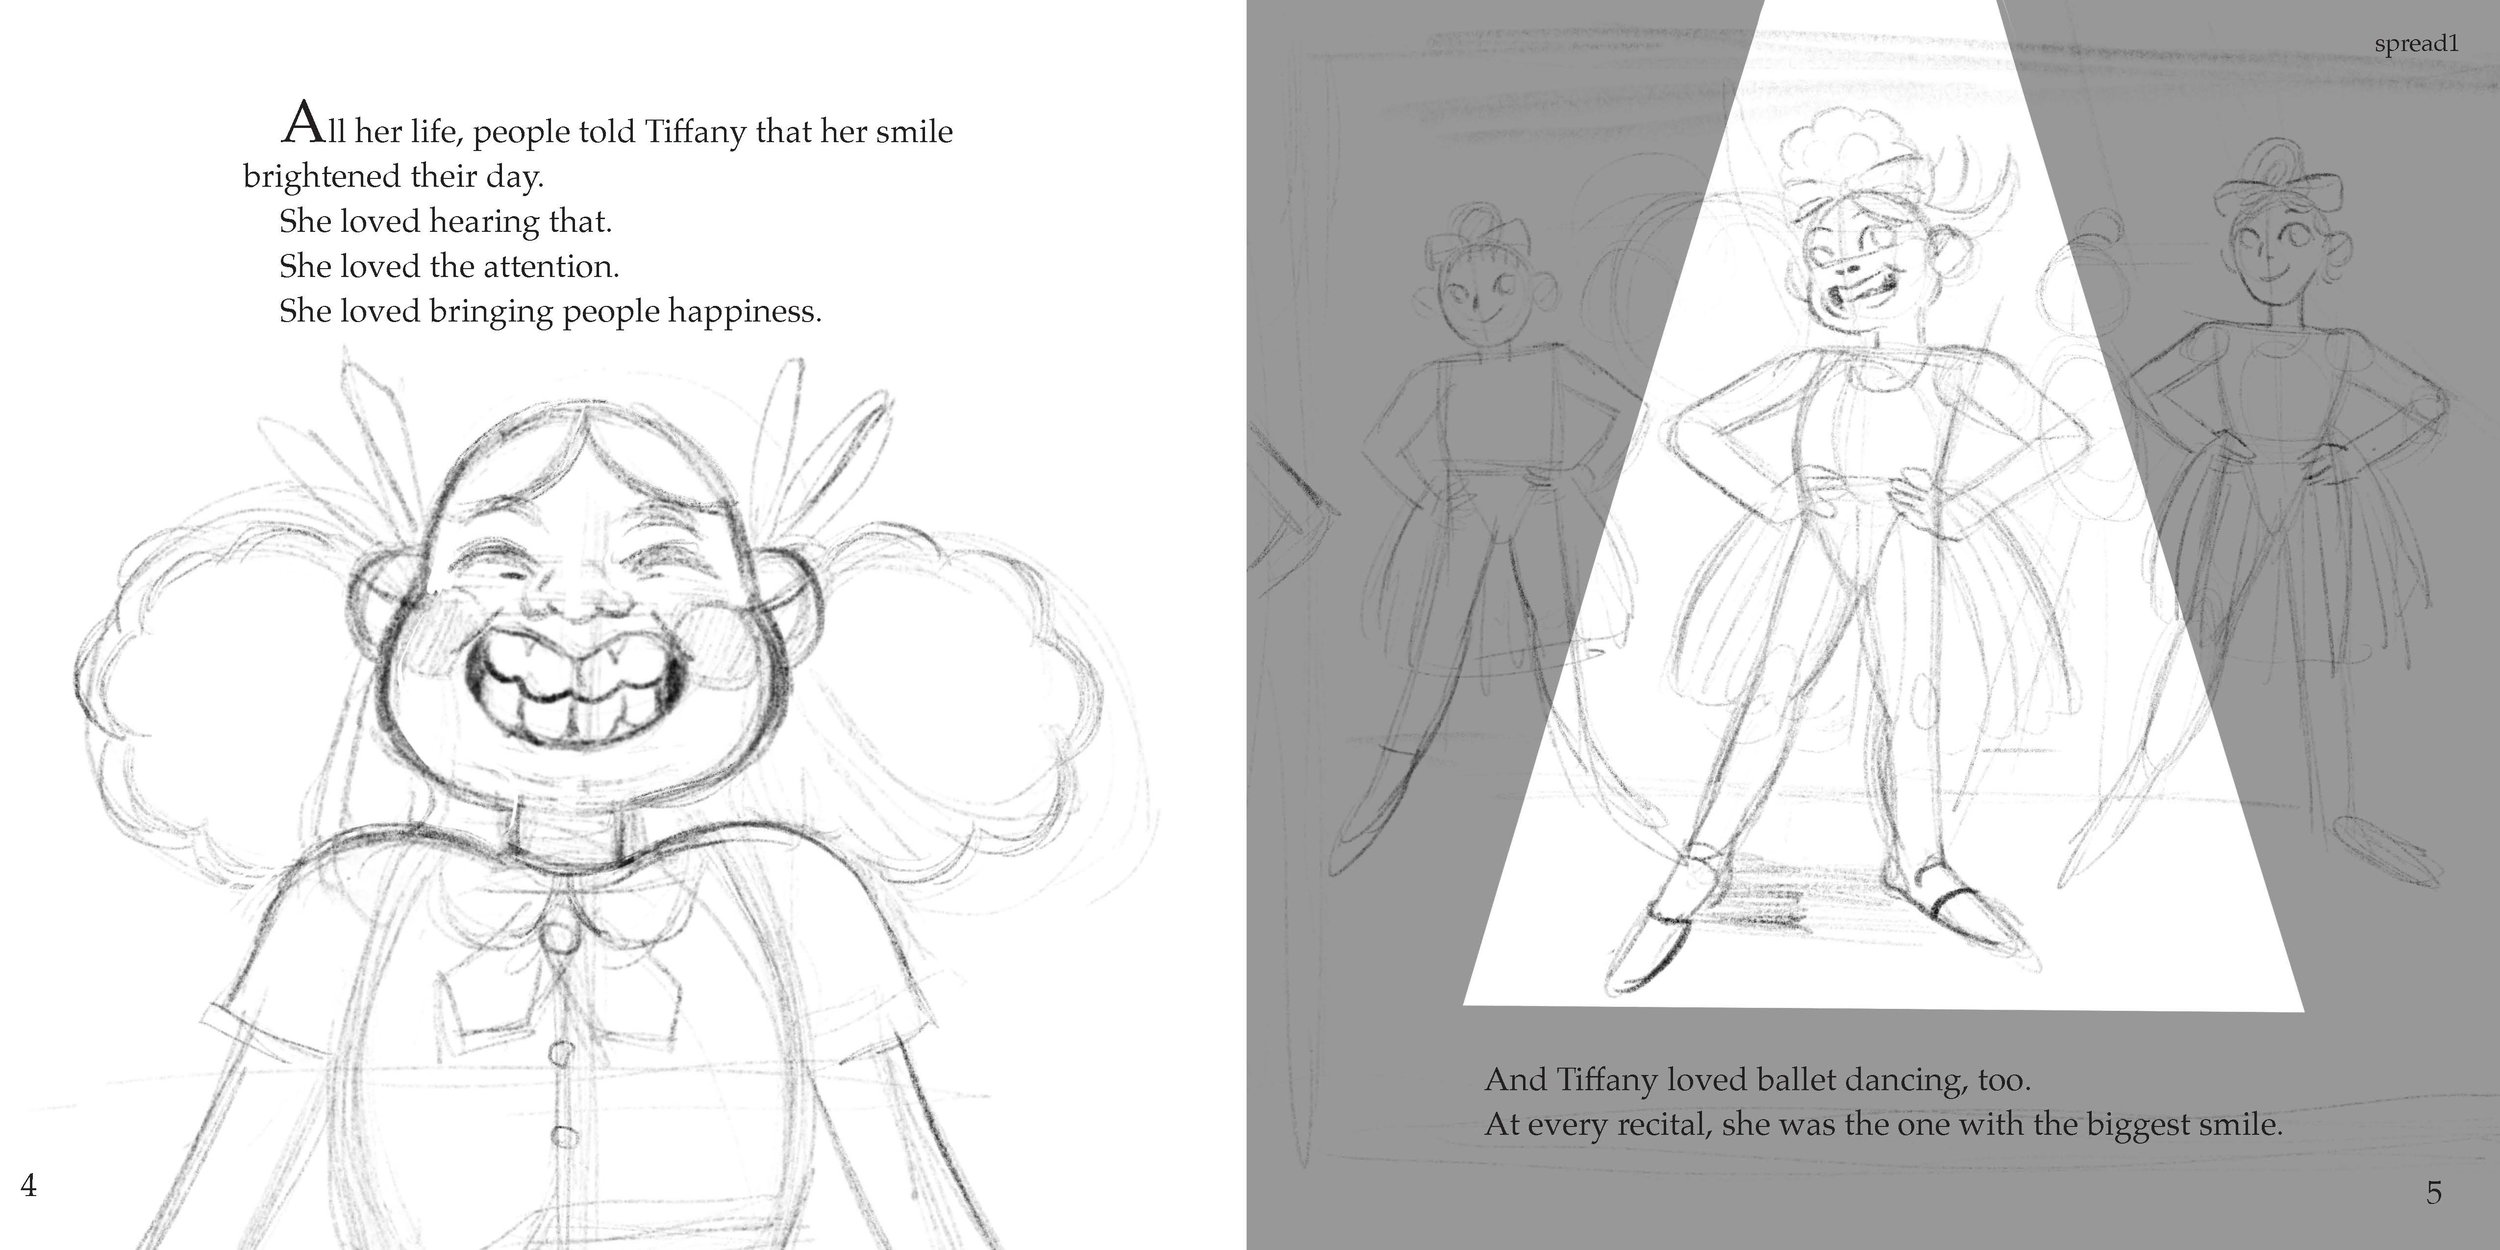 India Valle is illustrating  Tiffany and the Two Missing Teeth  by Doc, Brittany, and Don'naya.